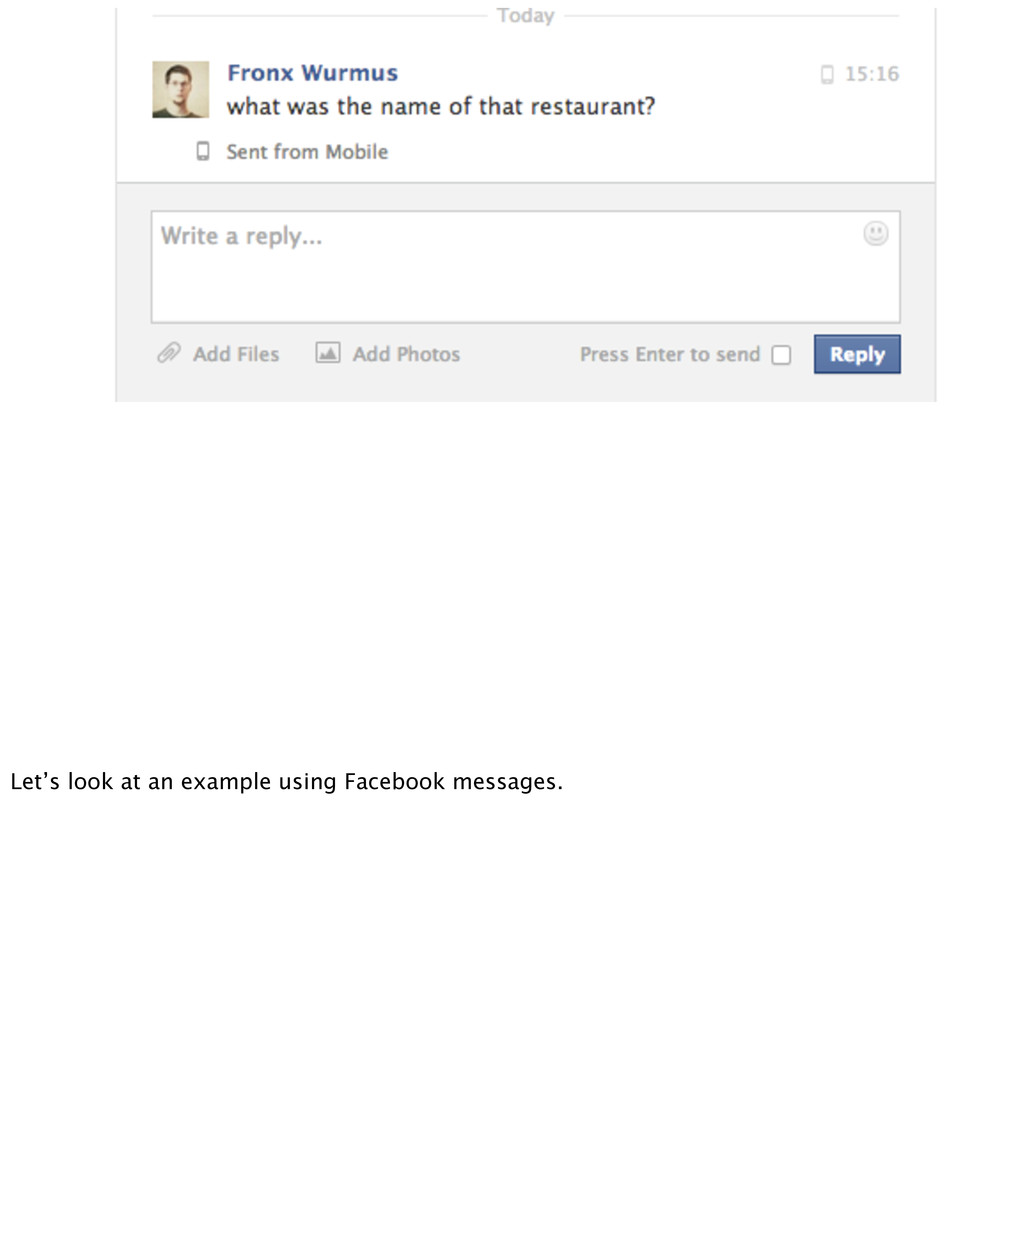 Let's look at an example using Facebook message...